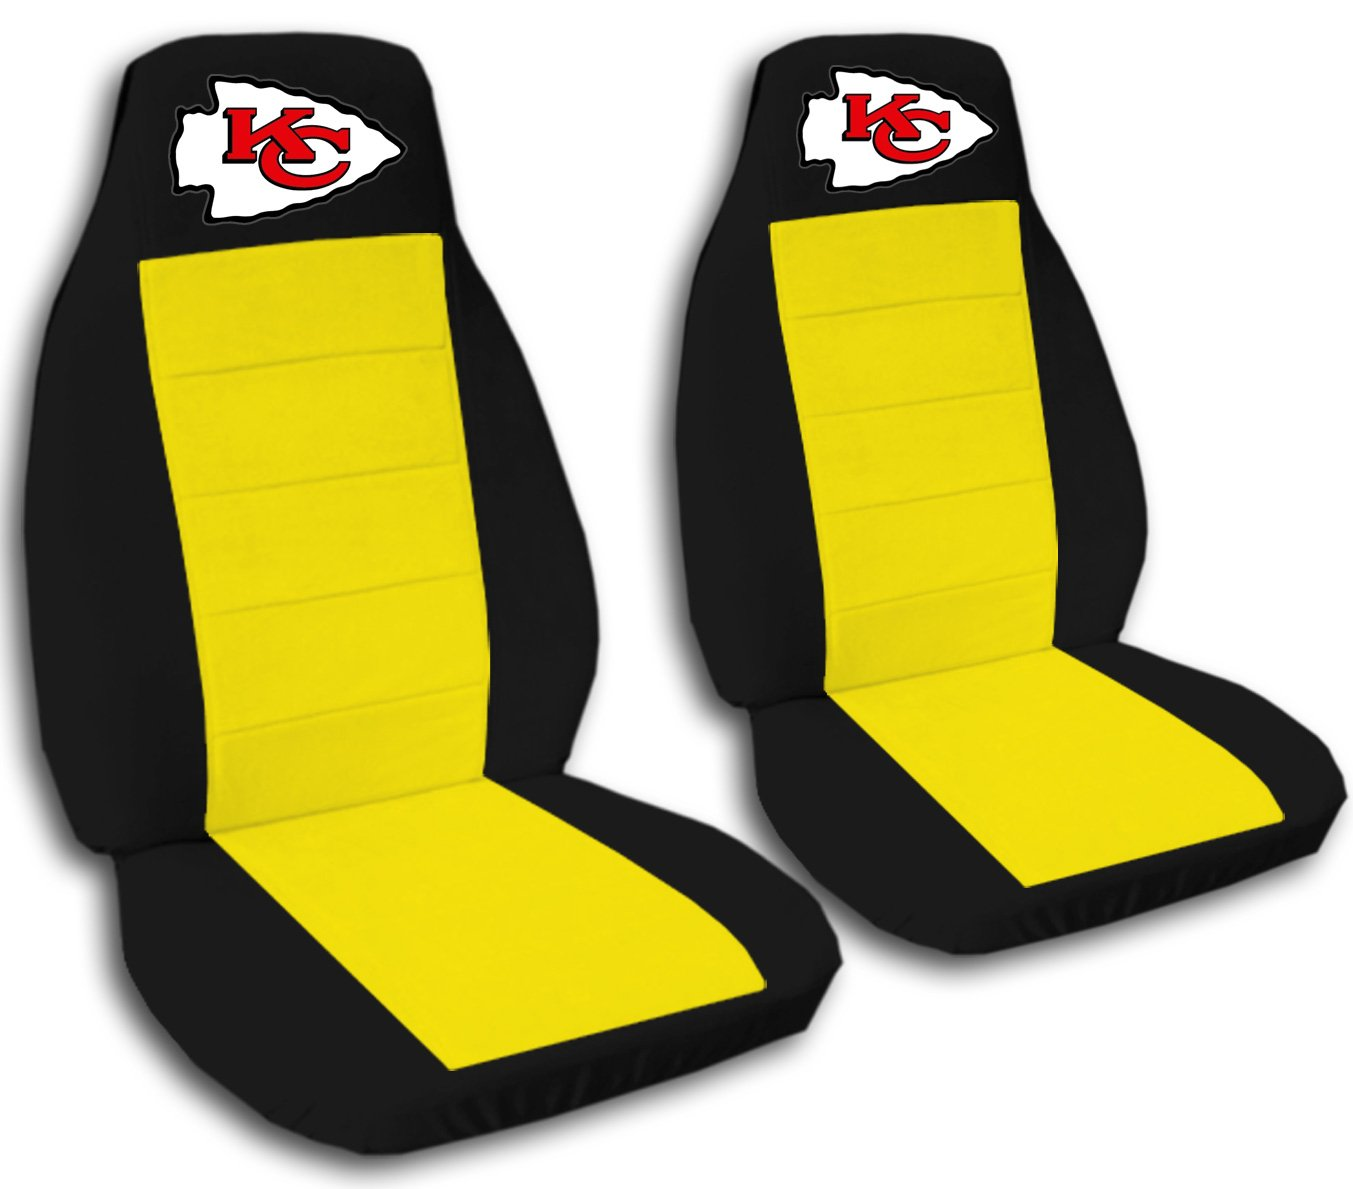 2 Black and Yellow Kansas City seat covers for a 2007 to 2012 Chevrolet Silverado. Side airbag friendly.